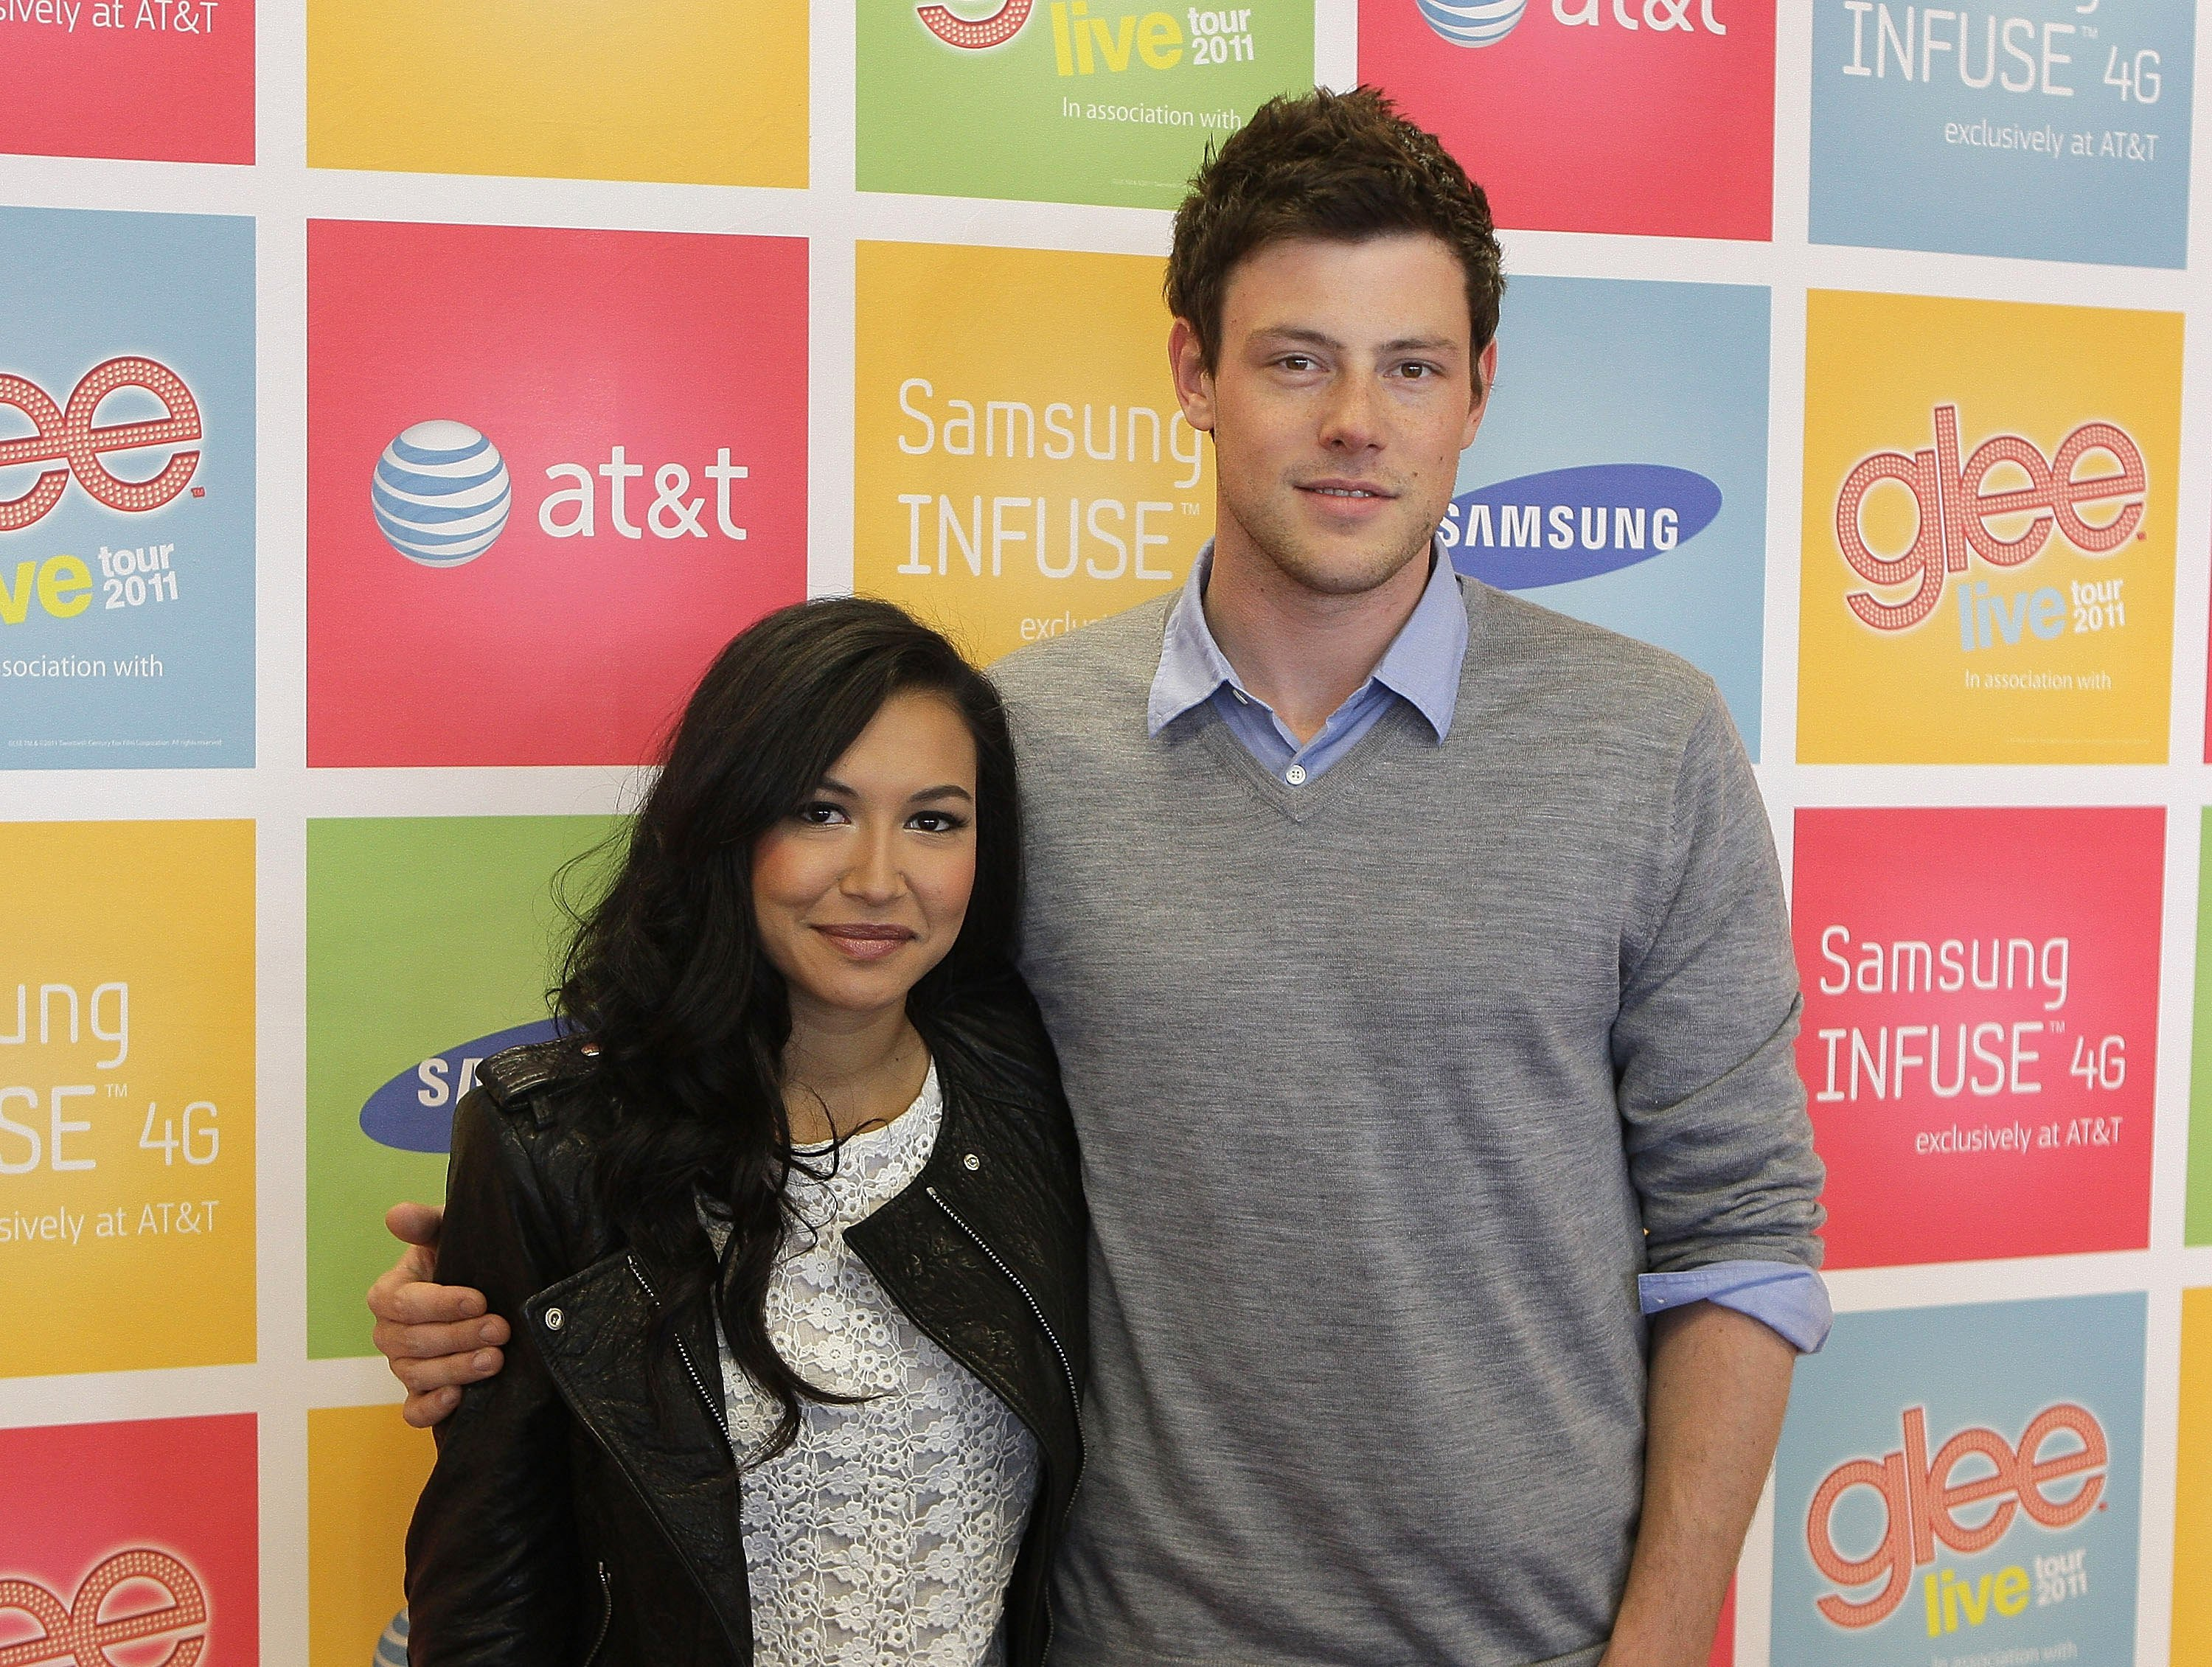 Naya Rivera and Cory Monteith during a 2011 meet and greet event in San Jose. | Photo: Getty Images